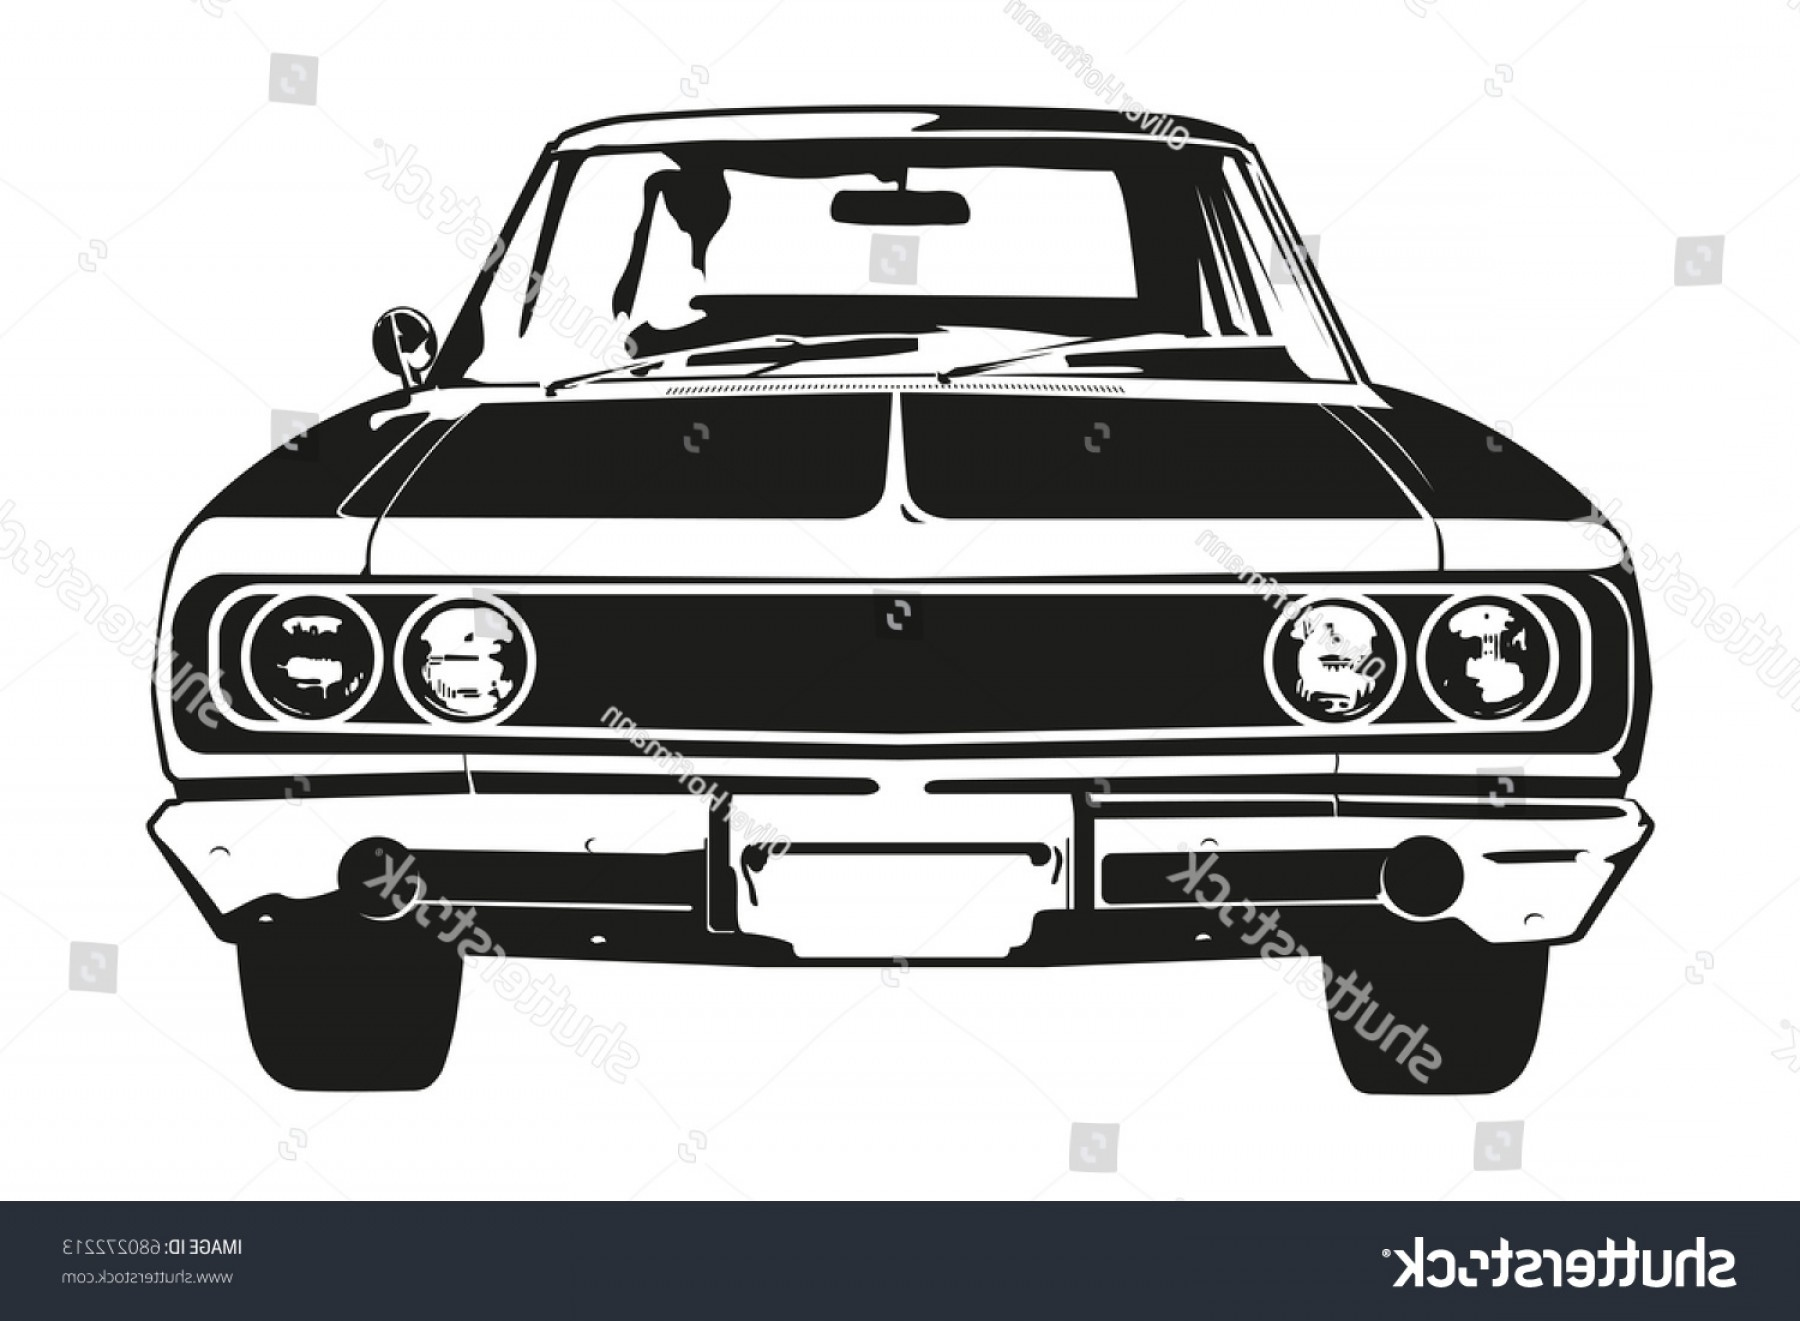 Muscle Car Silhouette Vector High Res: Front View Vector Silhouette Vintage American